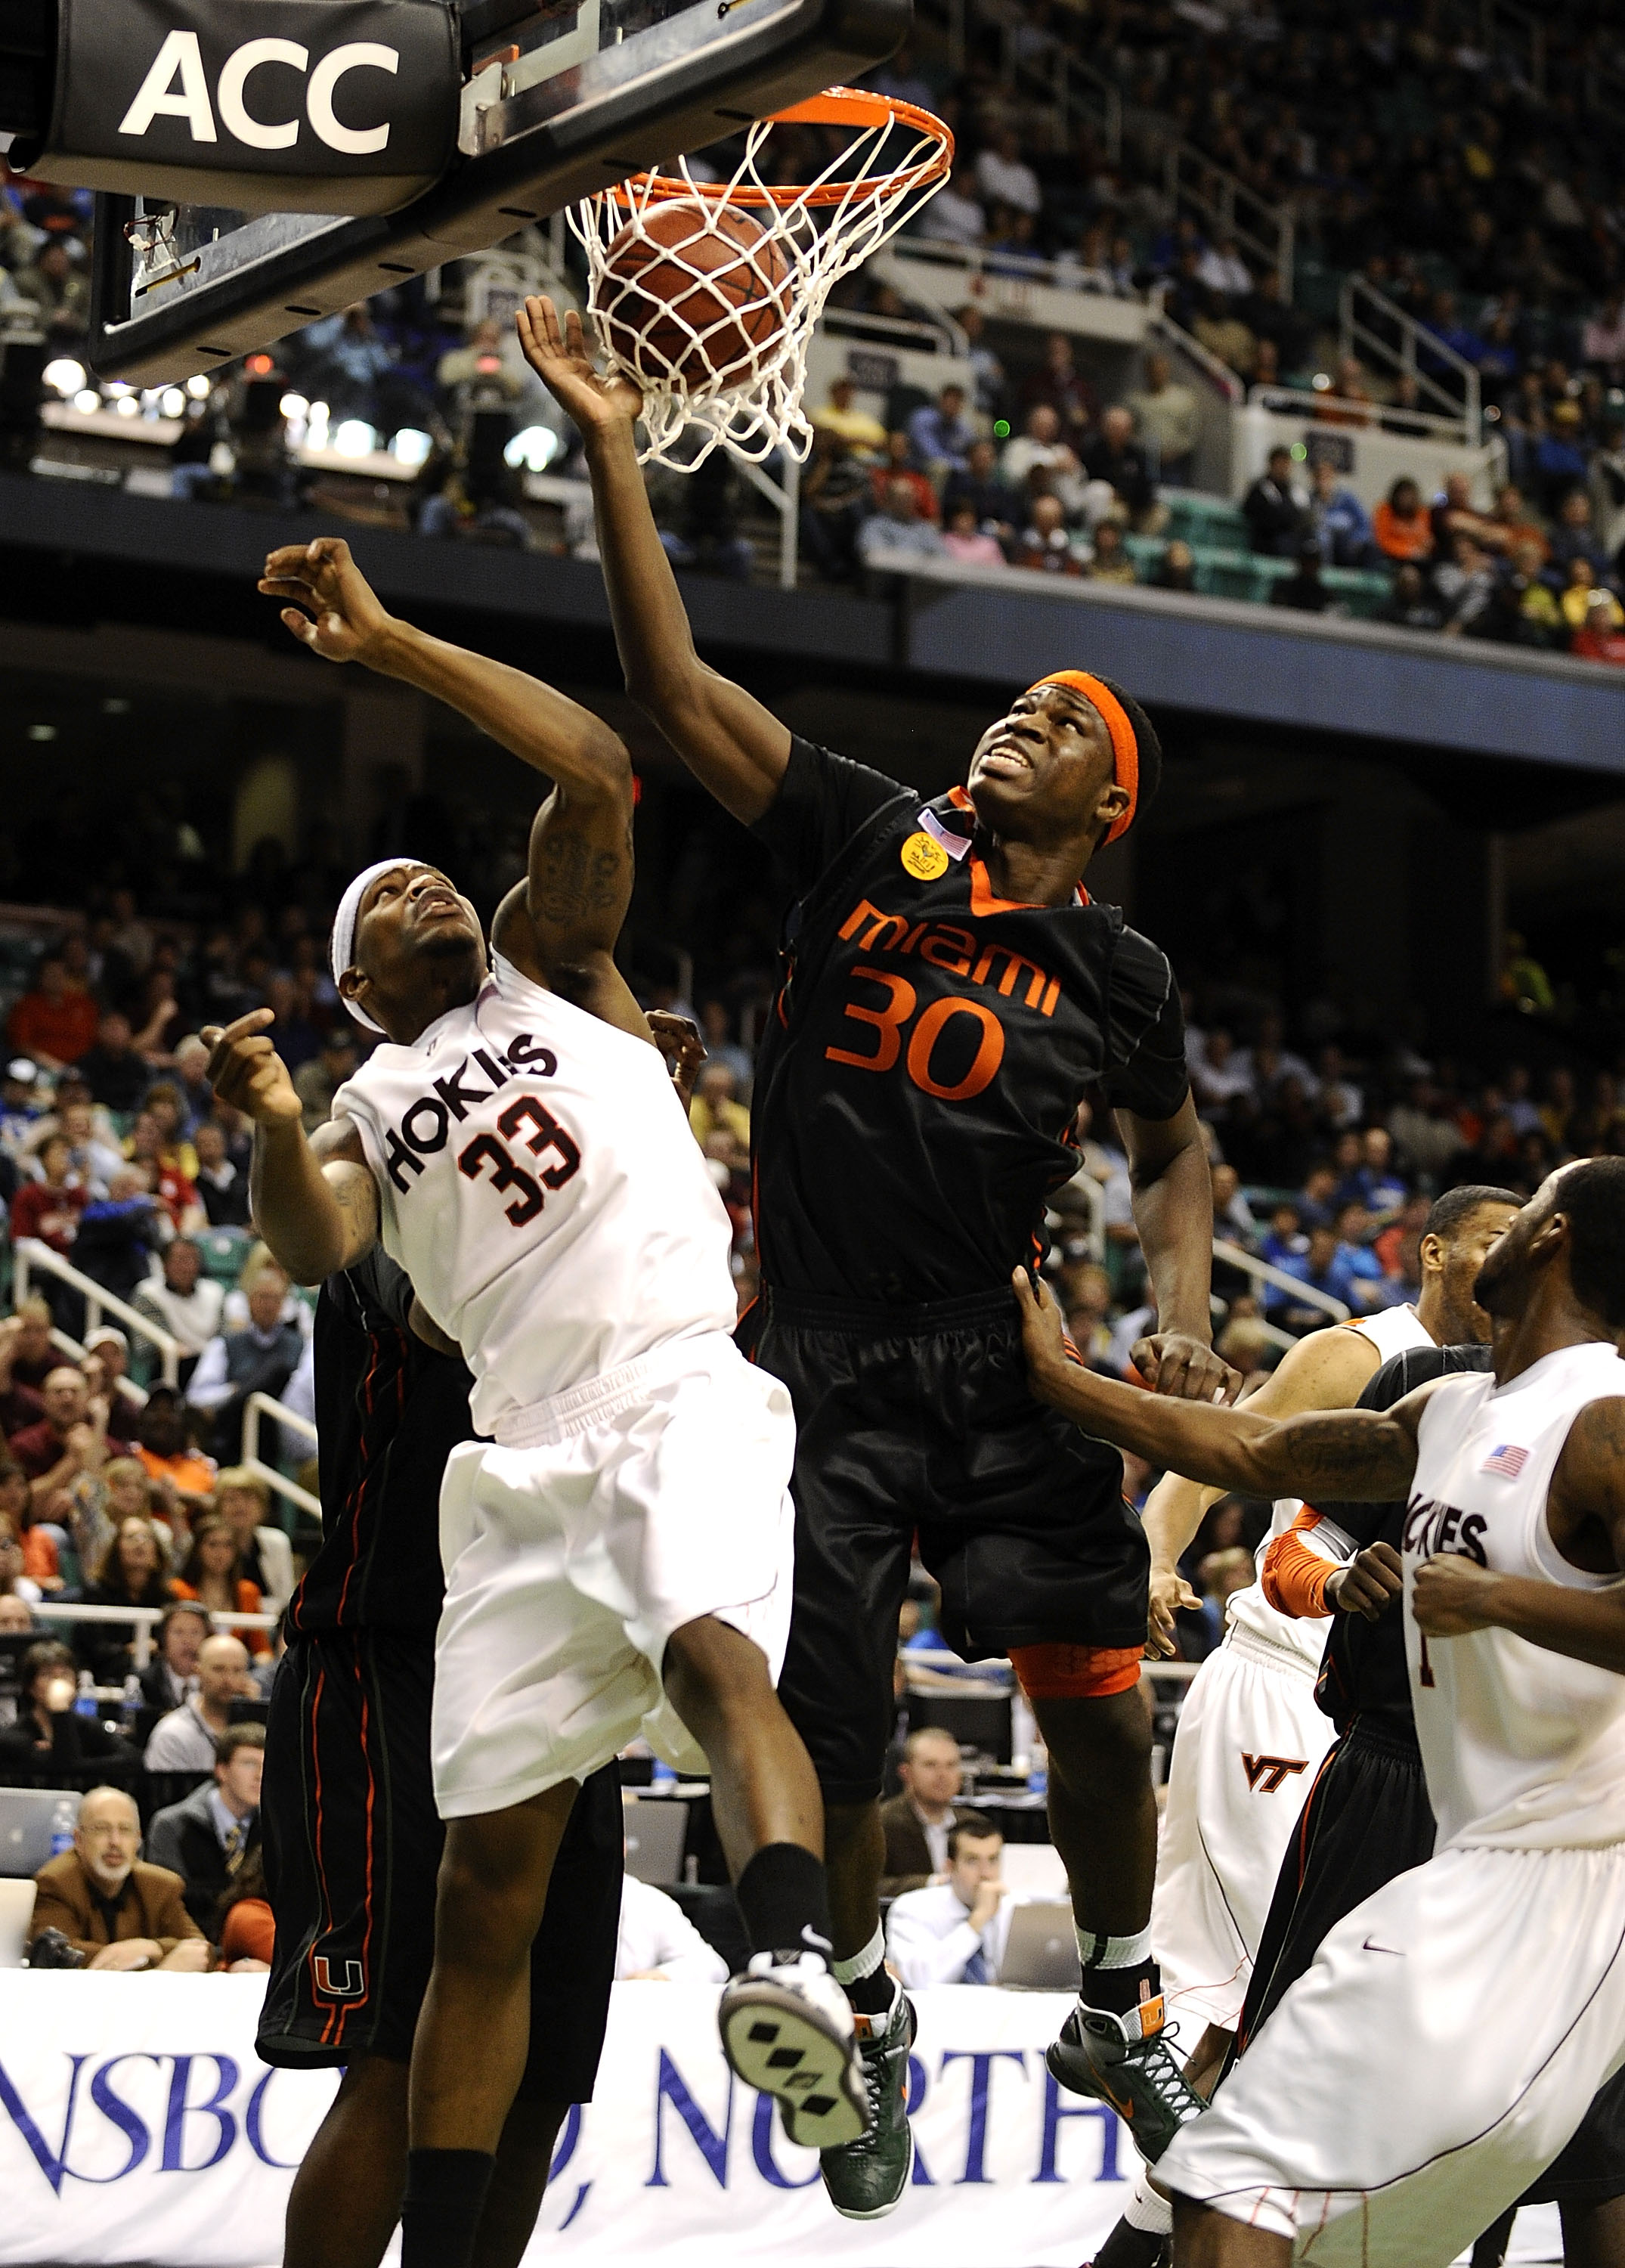 GREENSBORO, NC - MARCH 12:  JT Thompson #33 of the Virginia Tech Hokies defends against Adrian Thomas #30 of the University of Miami Hurricanes in their quarterfinal game in the 2010 ACC Men's Basketball Tournament at the Greensboro Coliseum on March 12,